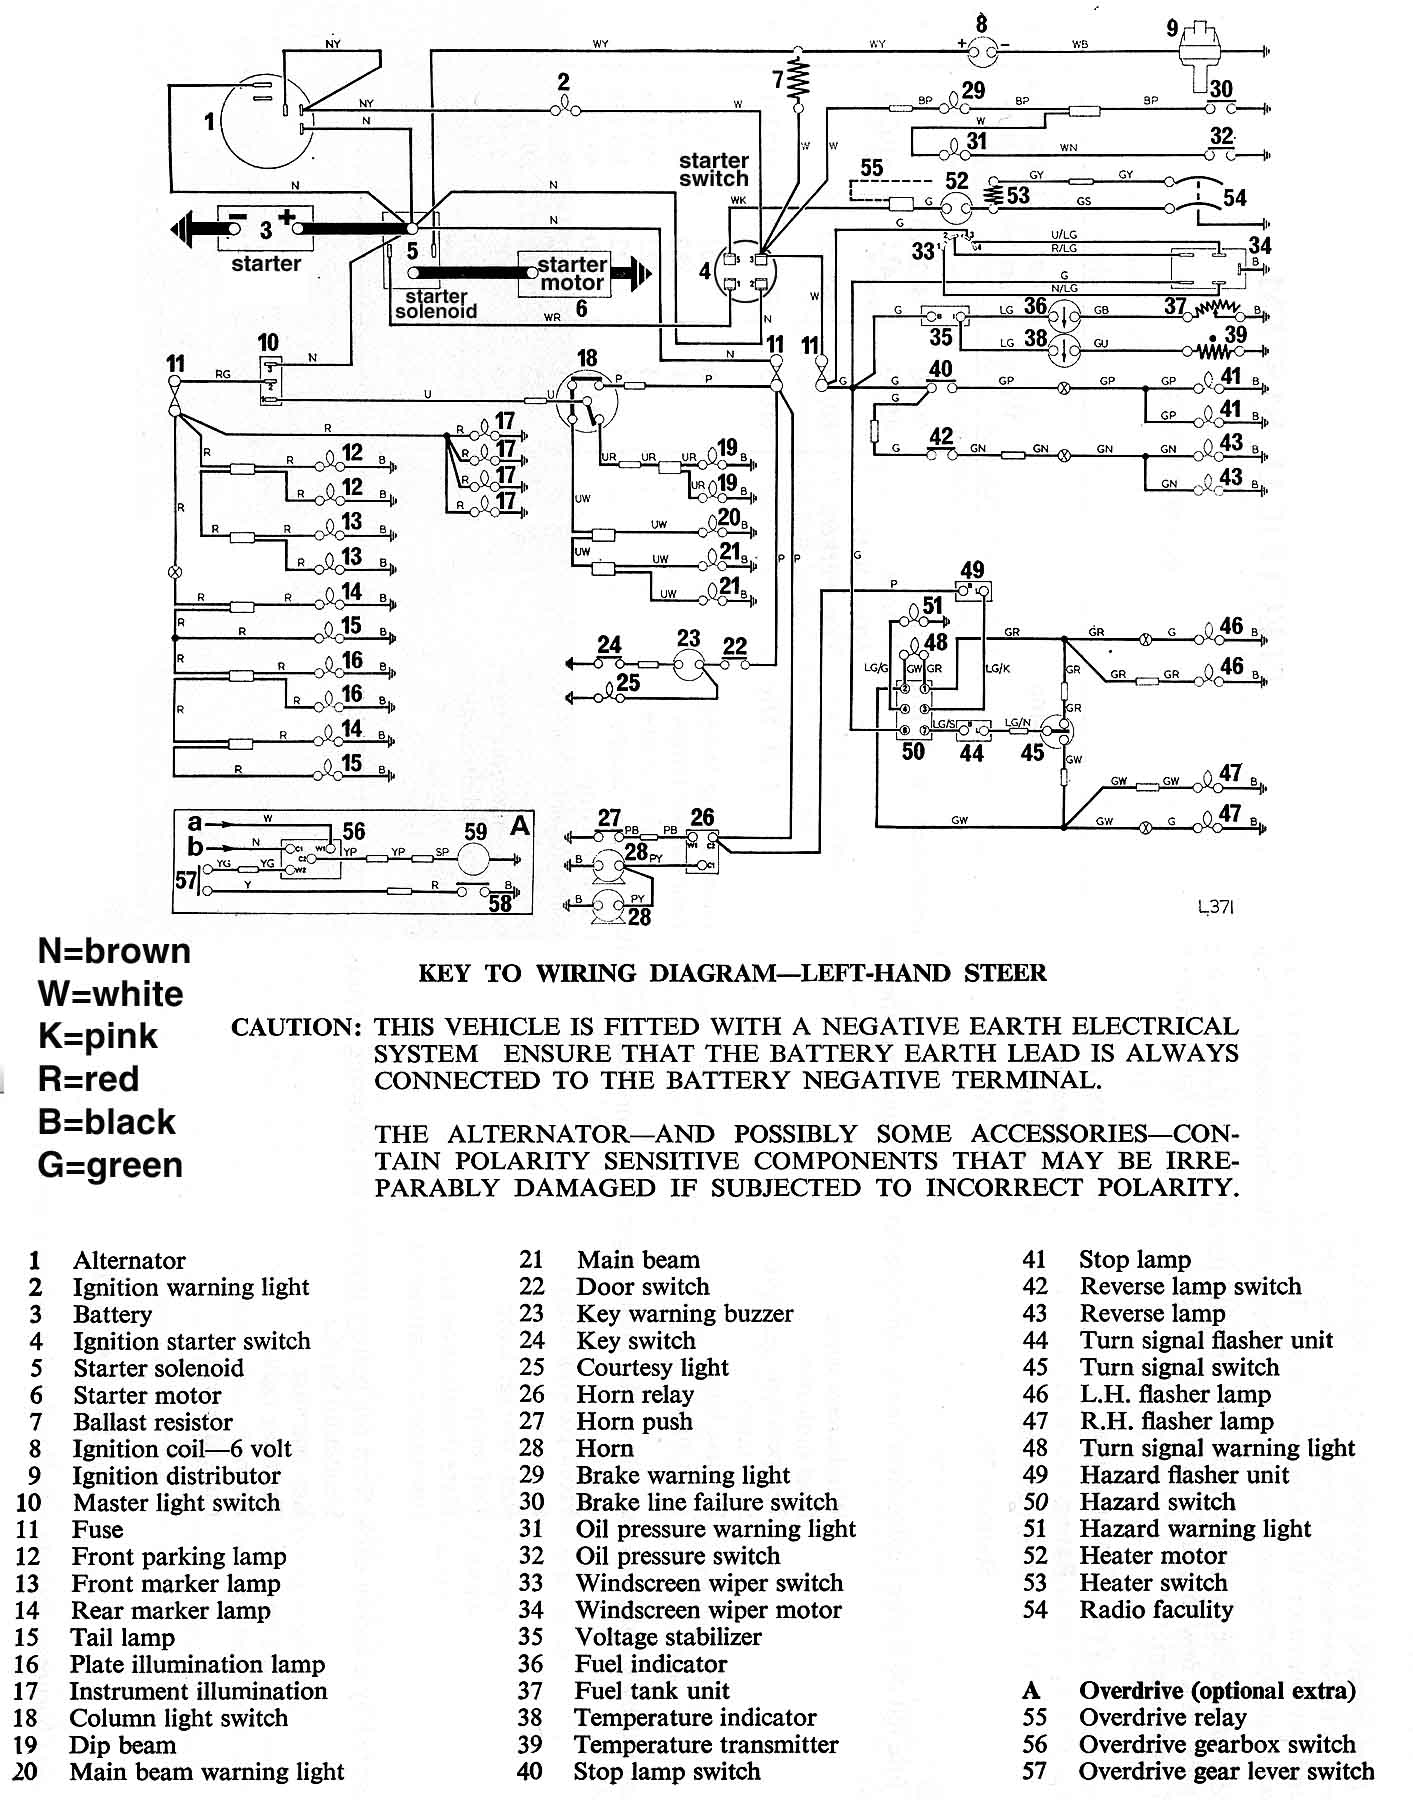 spitfire wire harness diagram wiring schematics and diagrams - triumph spitfire, gt6, herald toyota jbl wire harness diagram